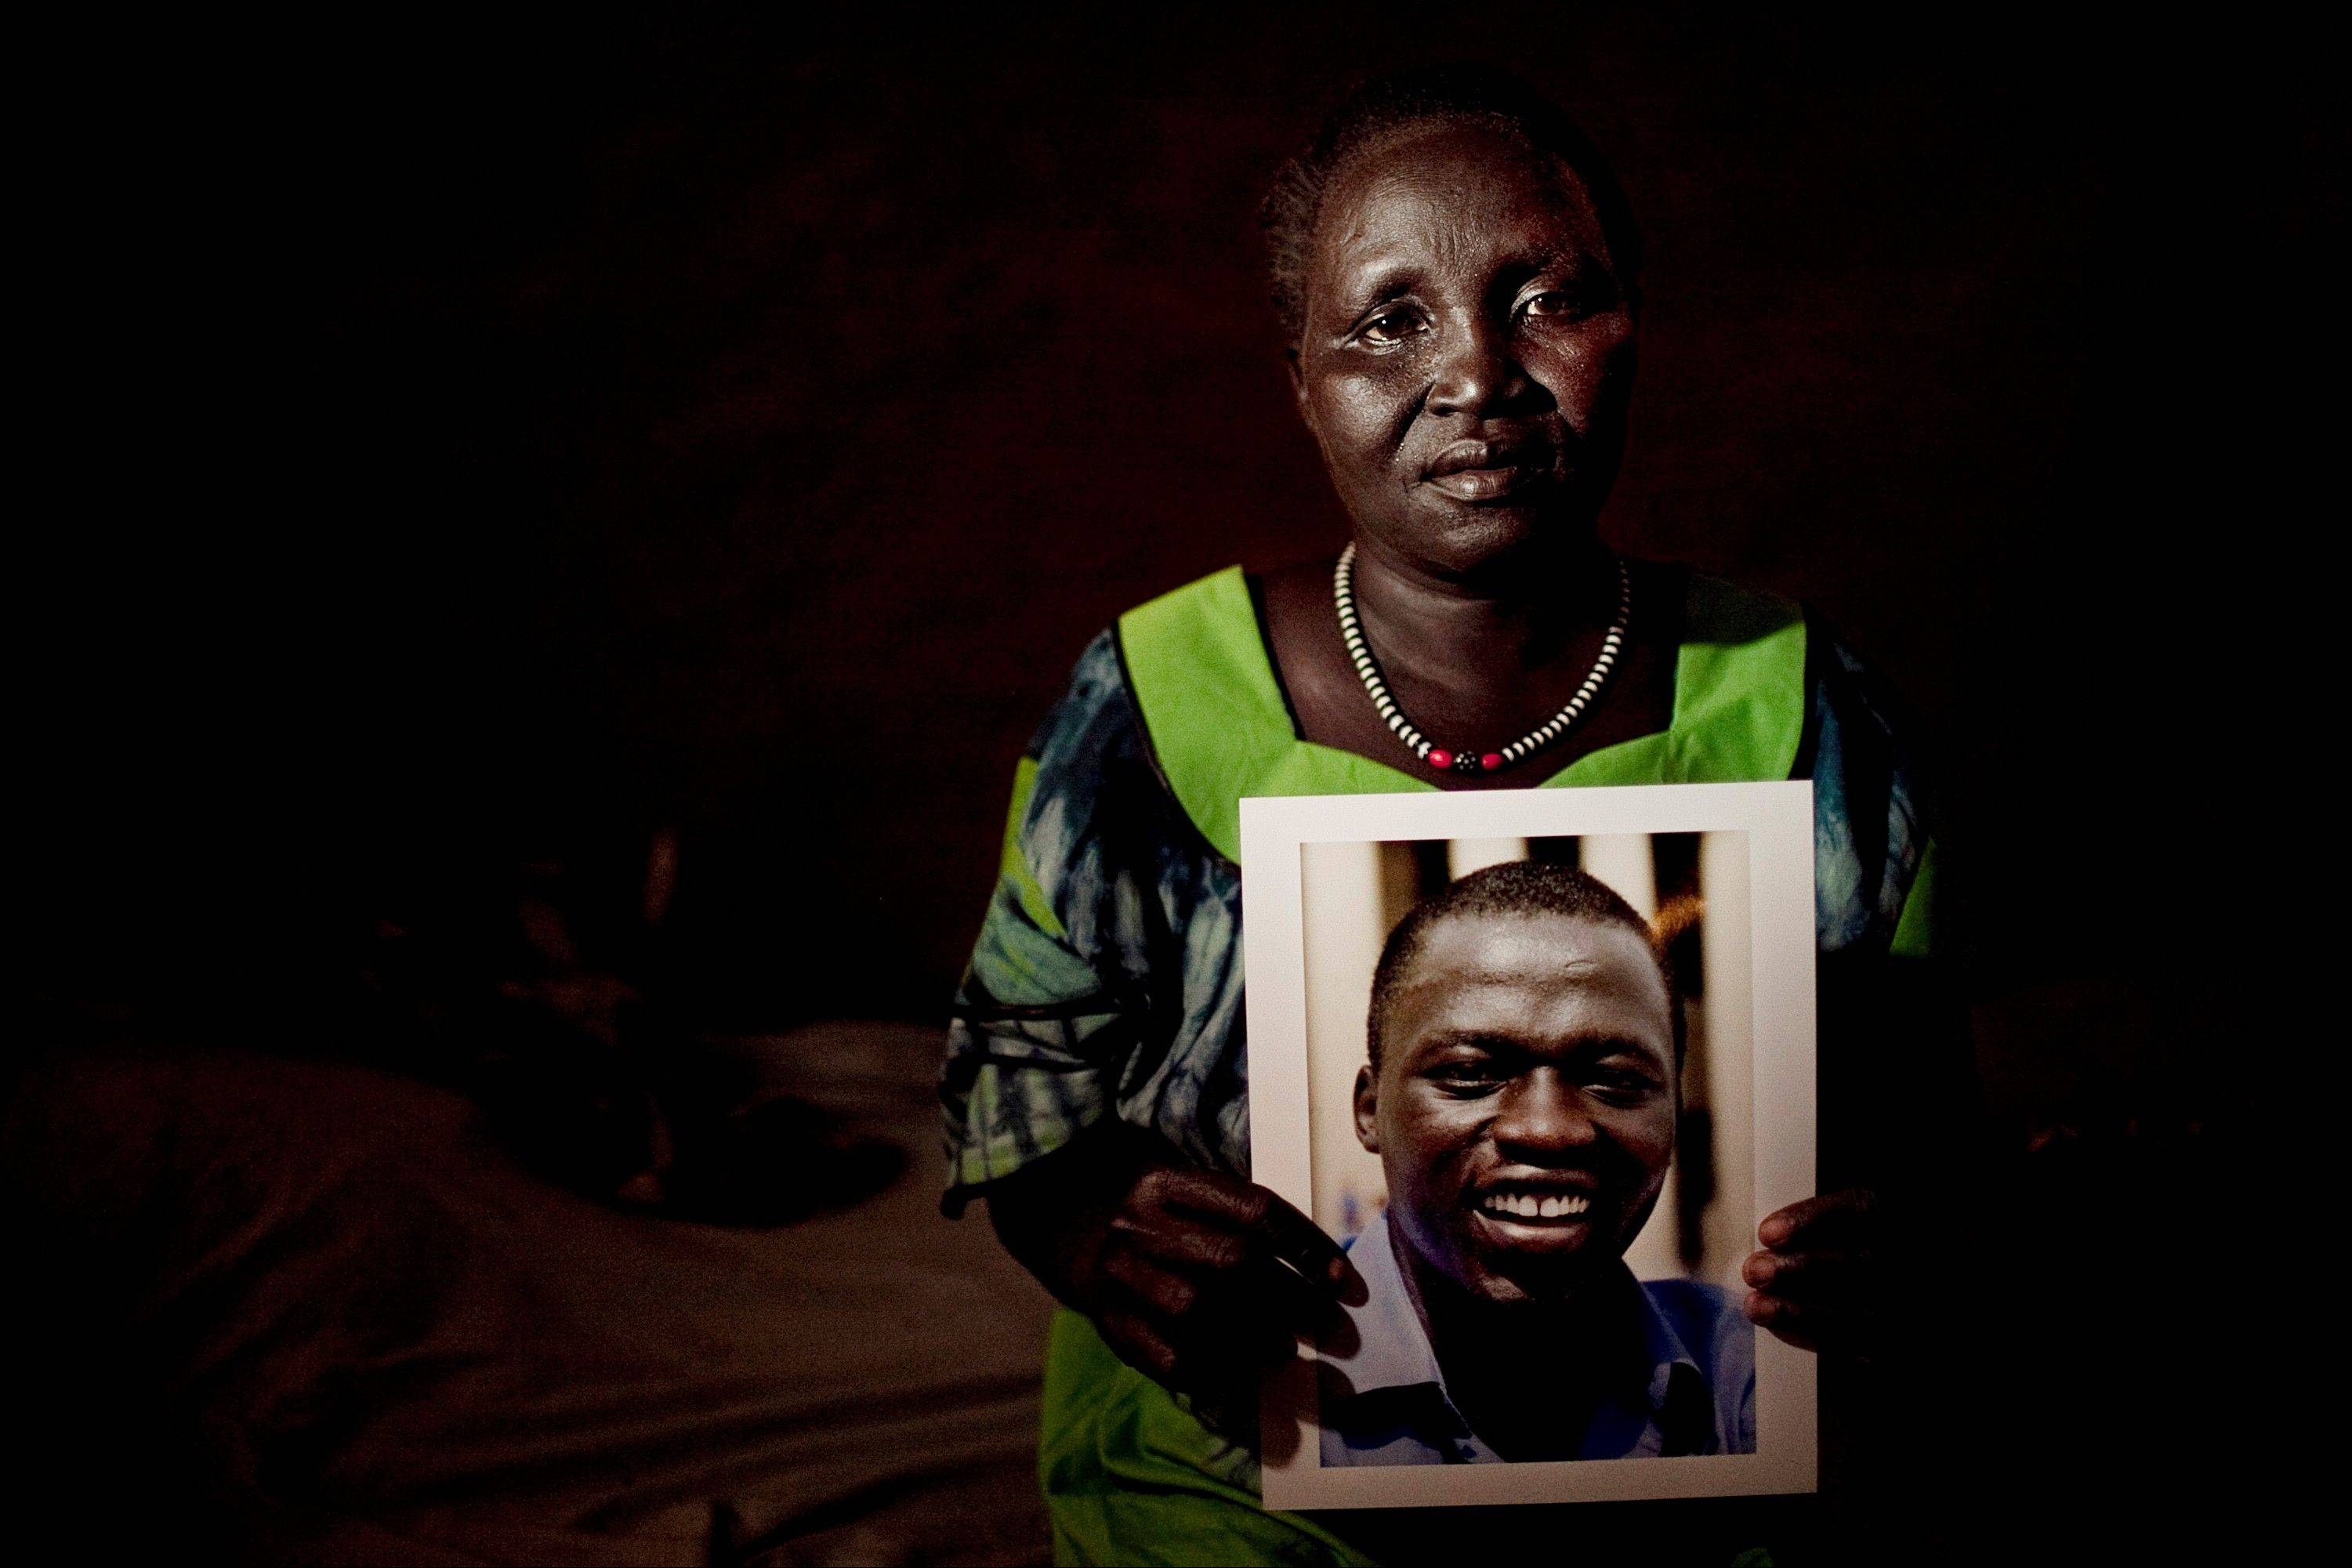 Morris Michael's mother, Elizabeth, poses with a recently-made portrait of her son inside her home in the Kakuma refugee camp in northern Kenya. She has not seen Morris, or a recent image of him, since he moved from Kenya to the United States in 2003. The family has lived as refugees in Kakuma since they fled war in neighboring Southern Sudan in 1993.